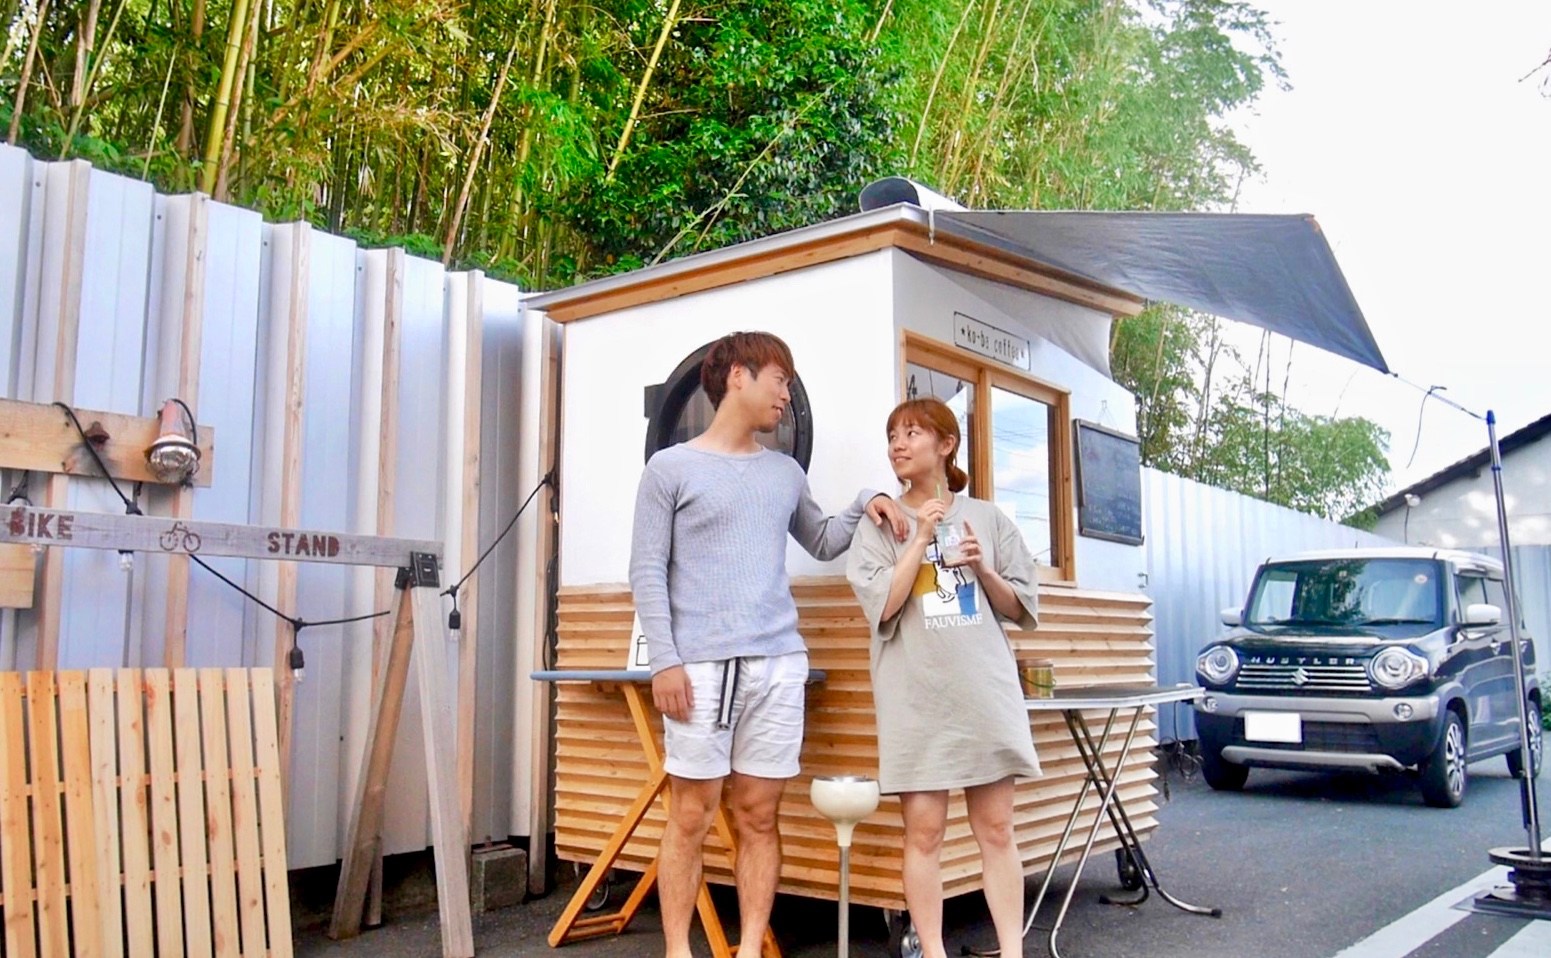 Eri-Taku Couple goes car camping at Shizuoka's famous coffee stand Nao-san Toko